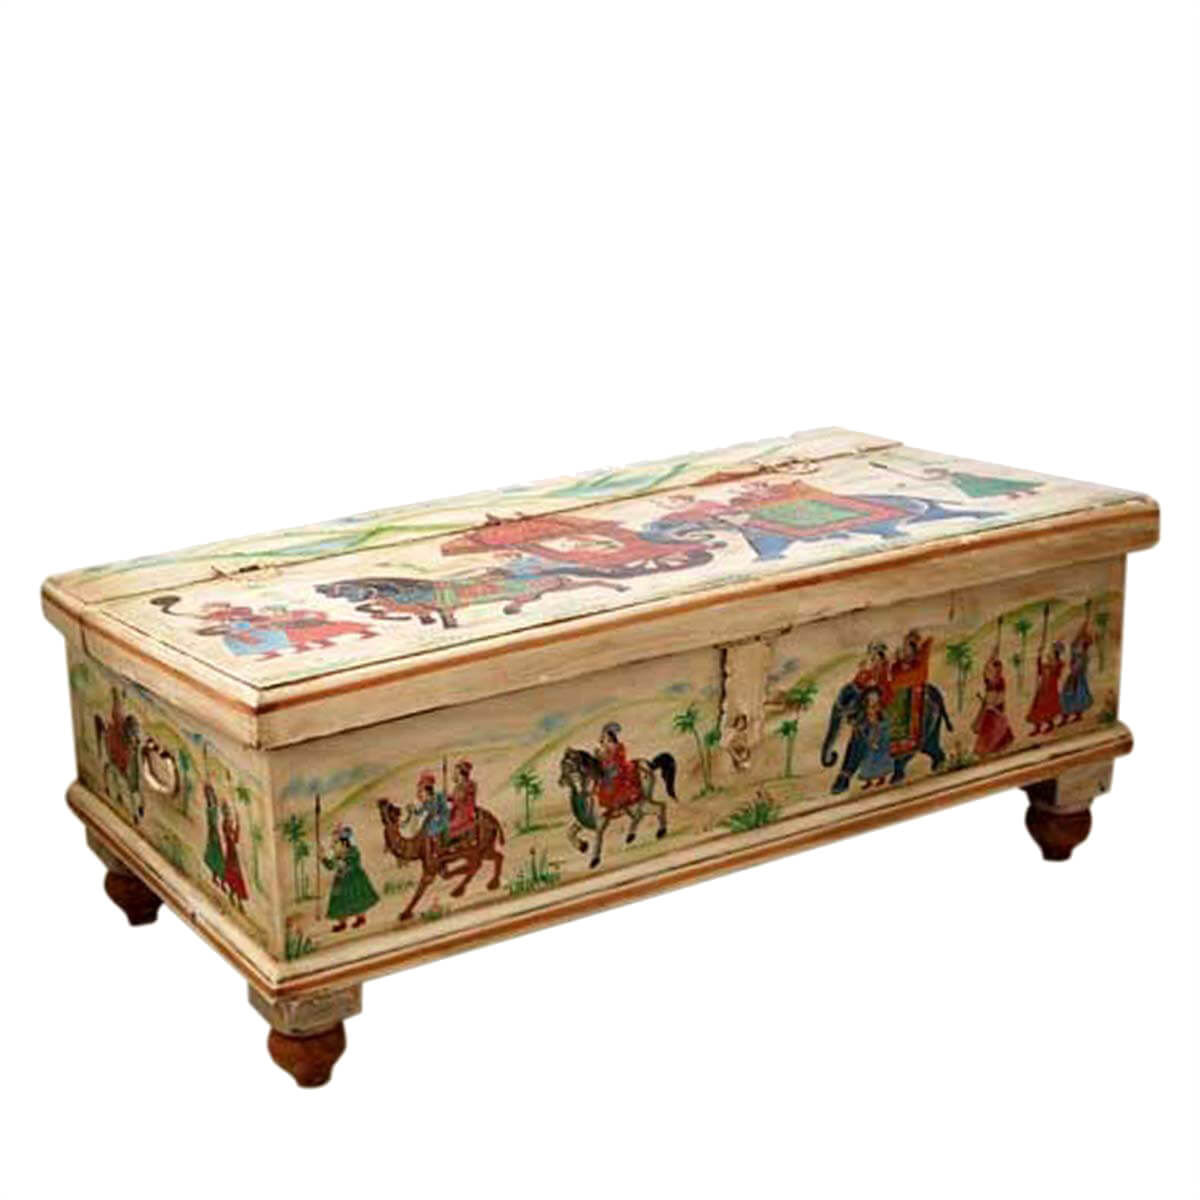 Hand painted storage hope chest wood coffee table large hand painted storage hope chest wood coffee table geotapseo Image collections